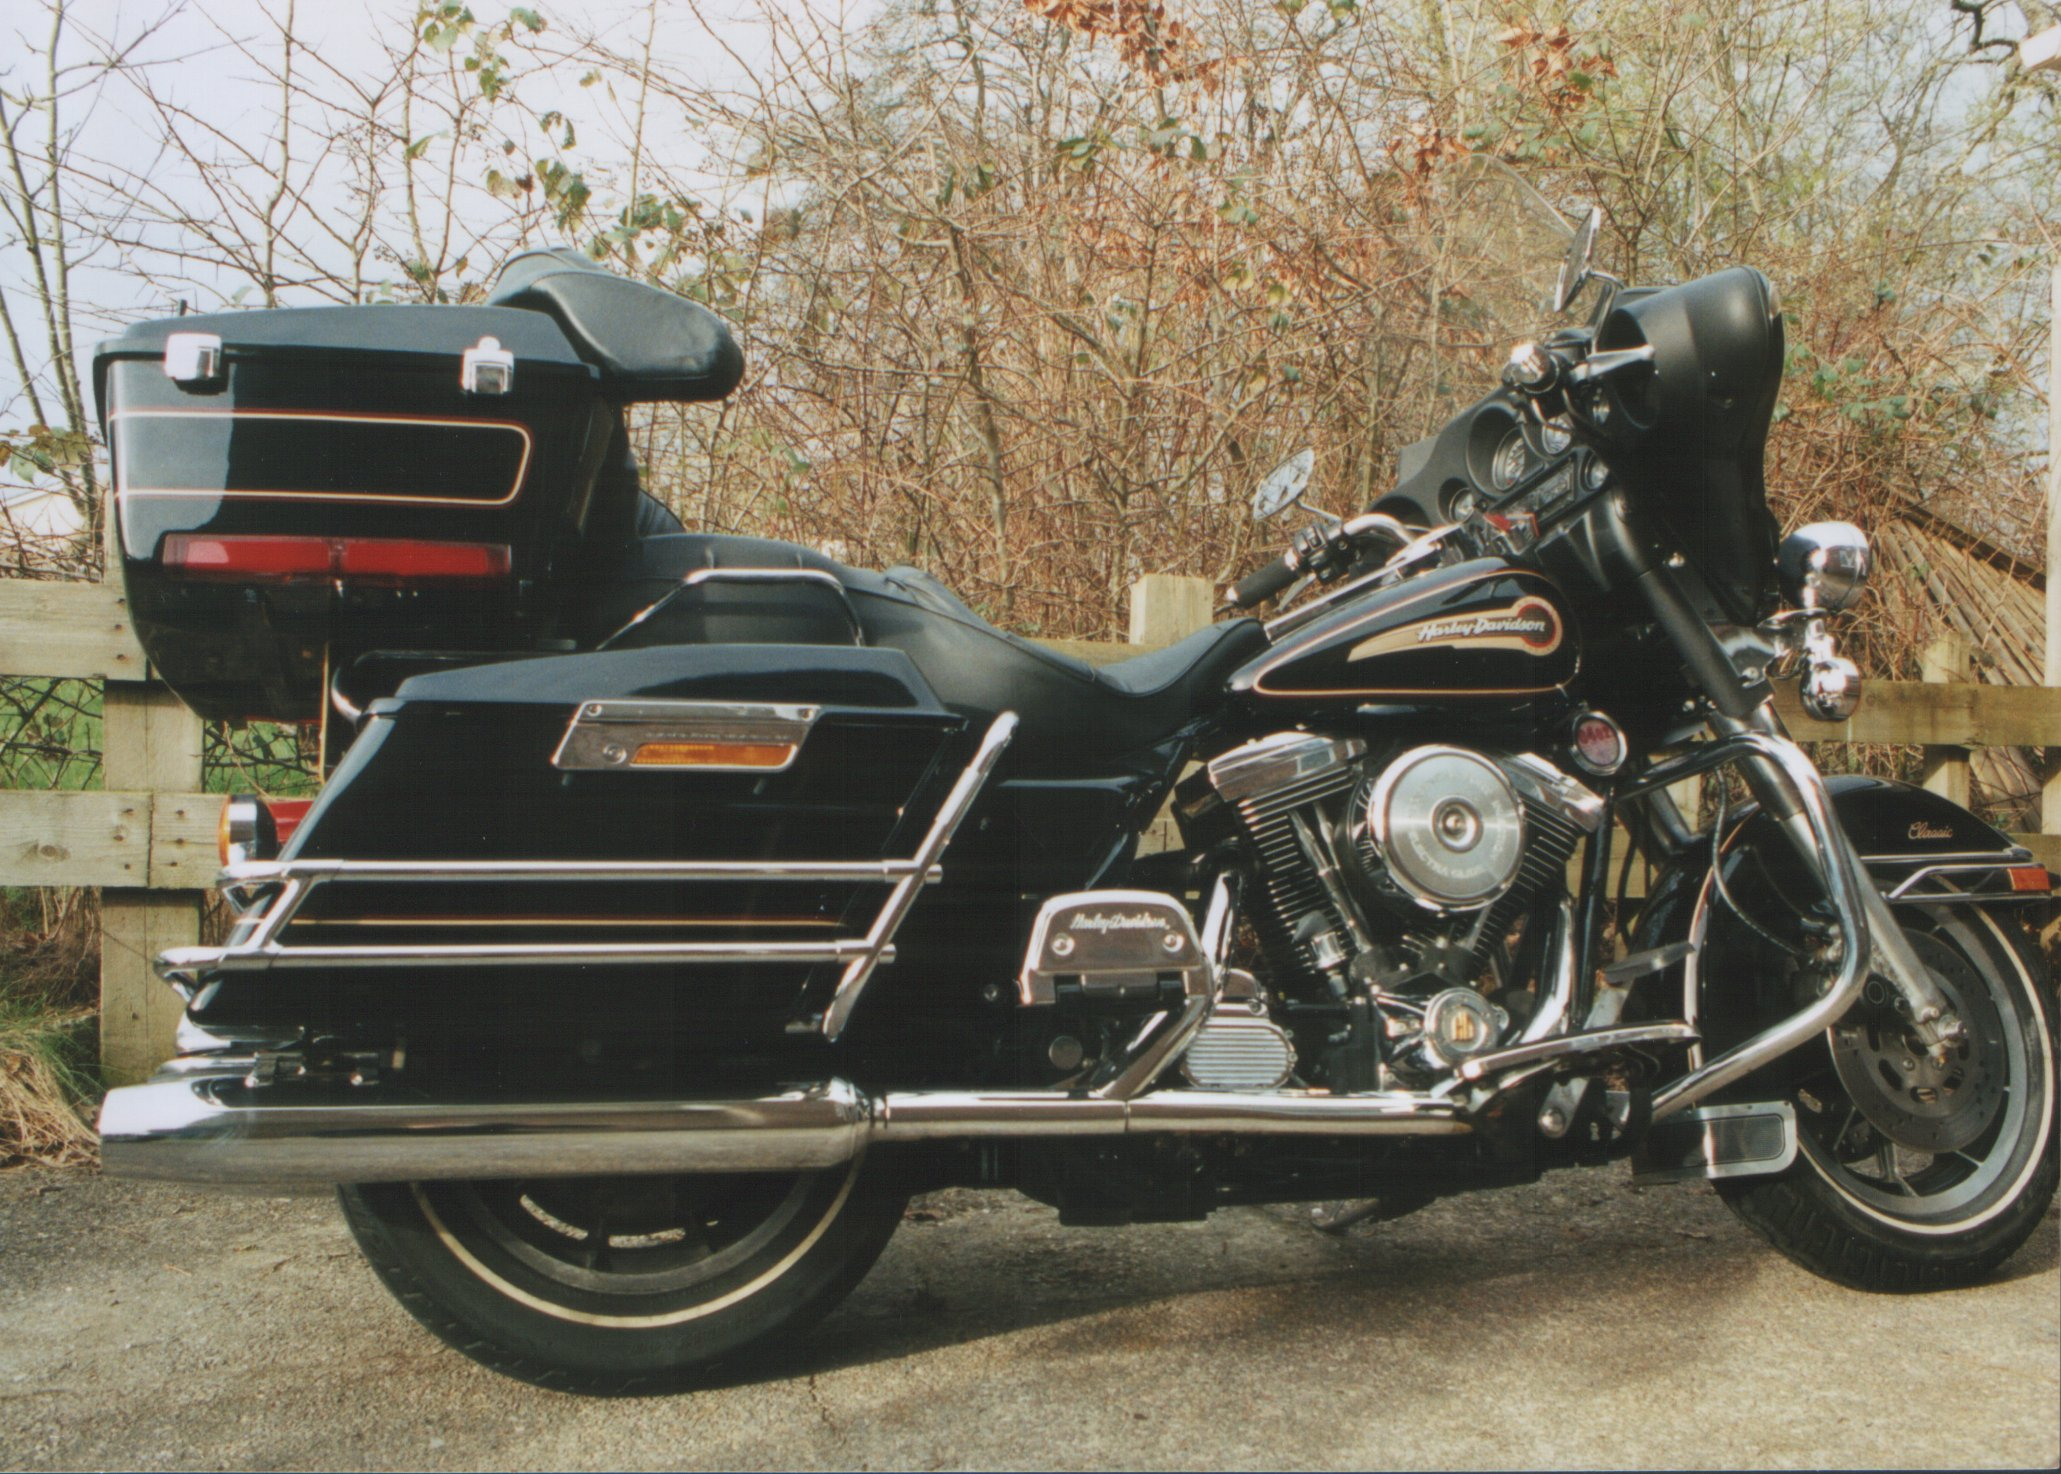 harley davidson flhtc 1340 electra glide classic 1983 moto 1983 harley davidson flhtc 1340 electra glide classic pics, specs FLHS Electra Glide Sport at creativeand.co